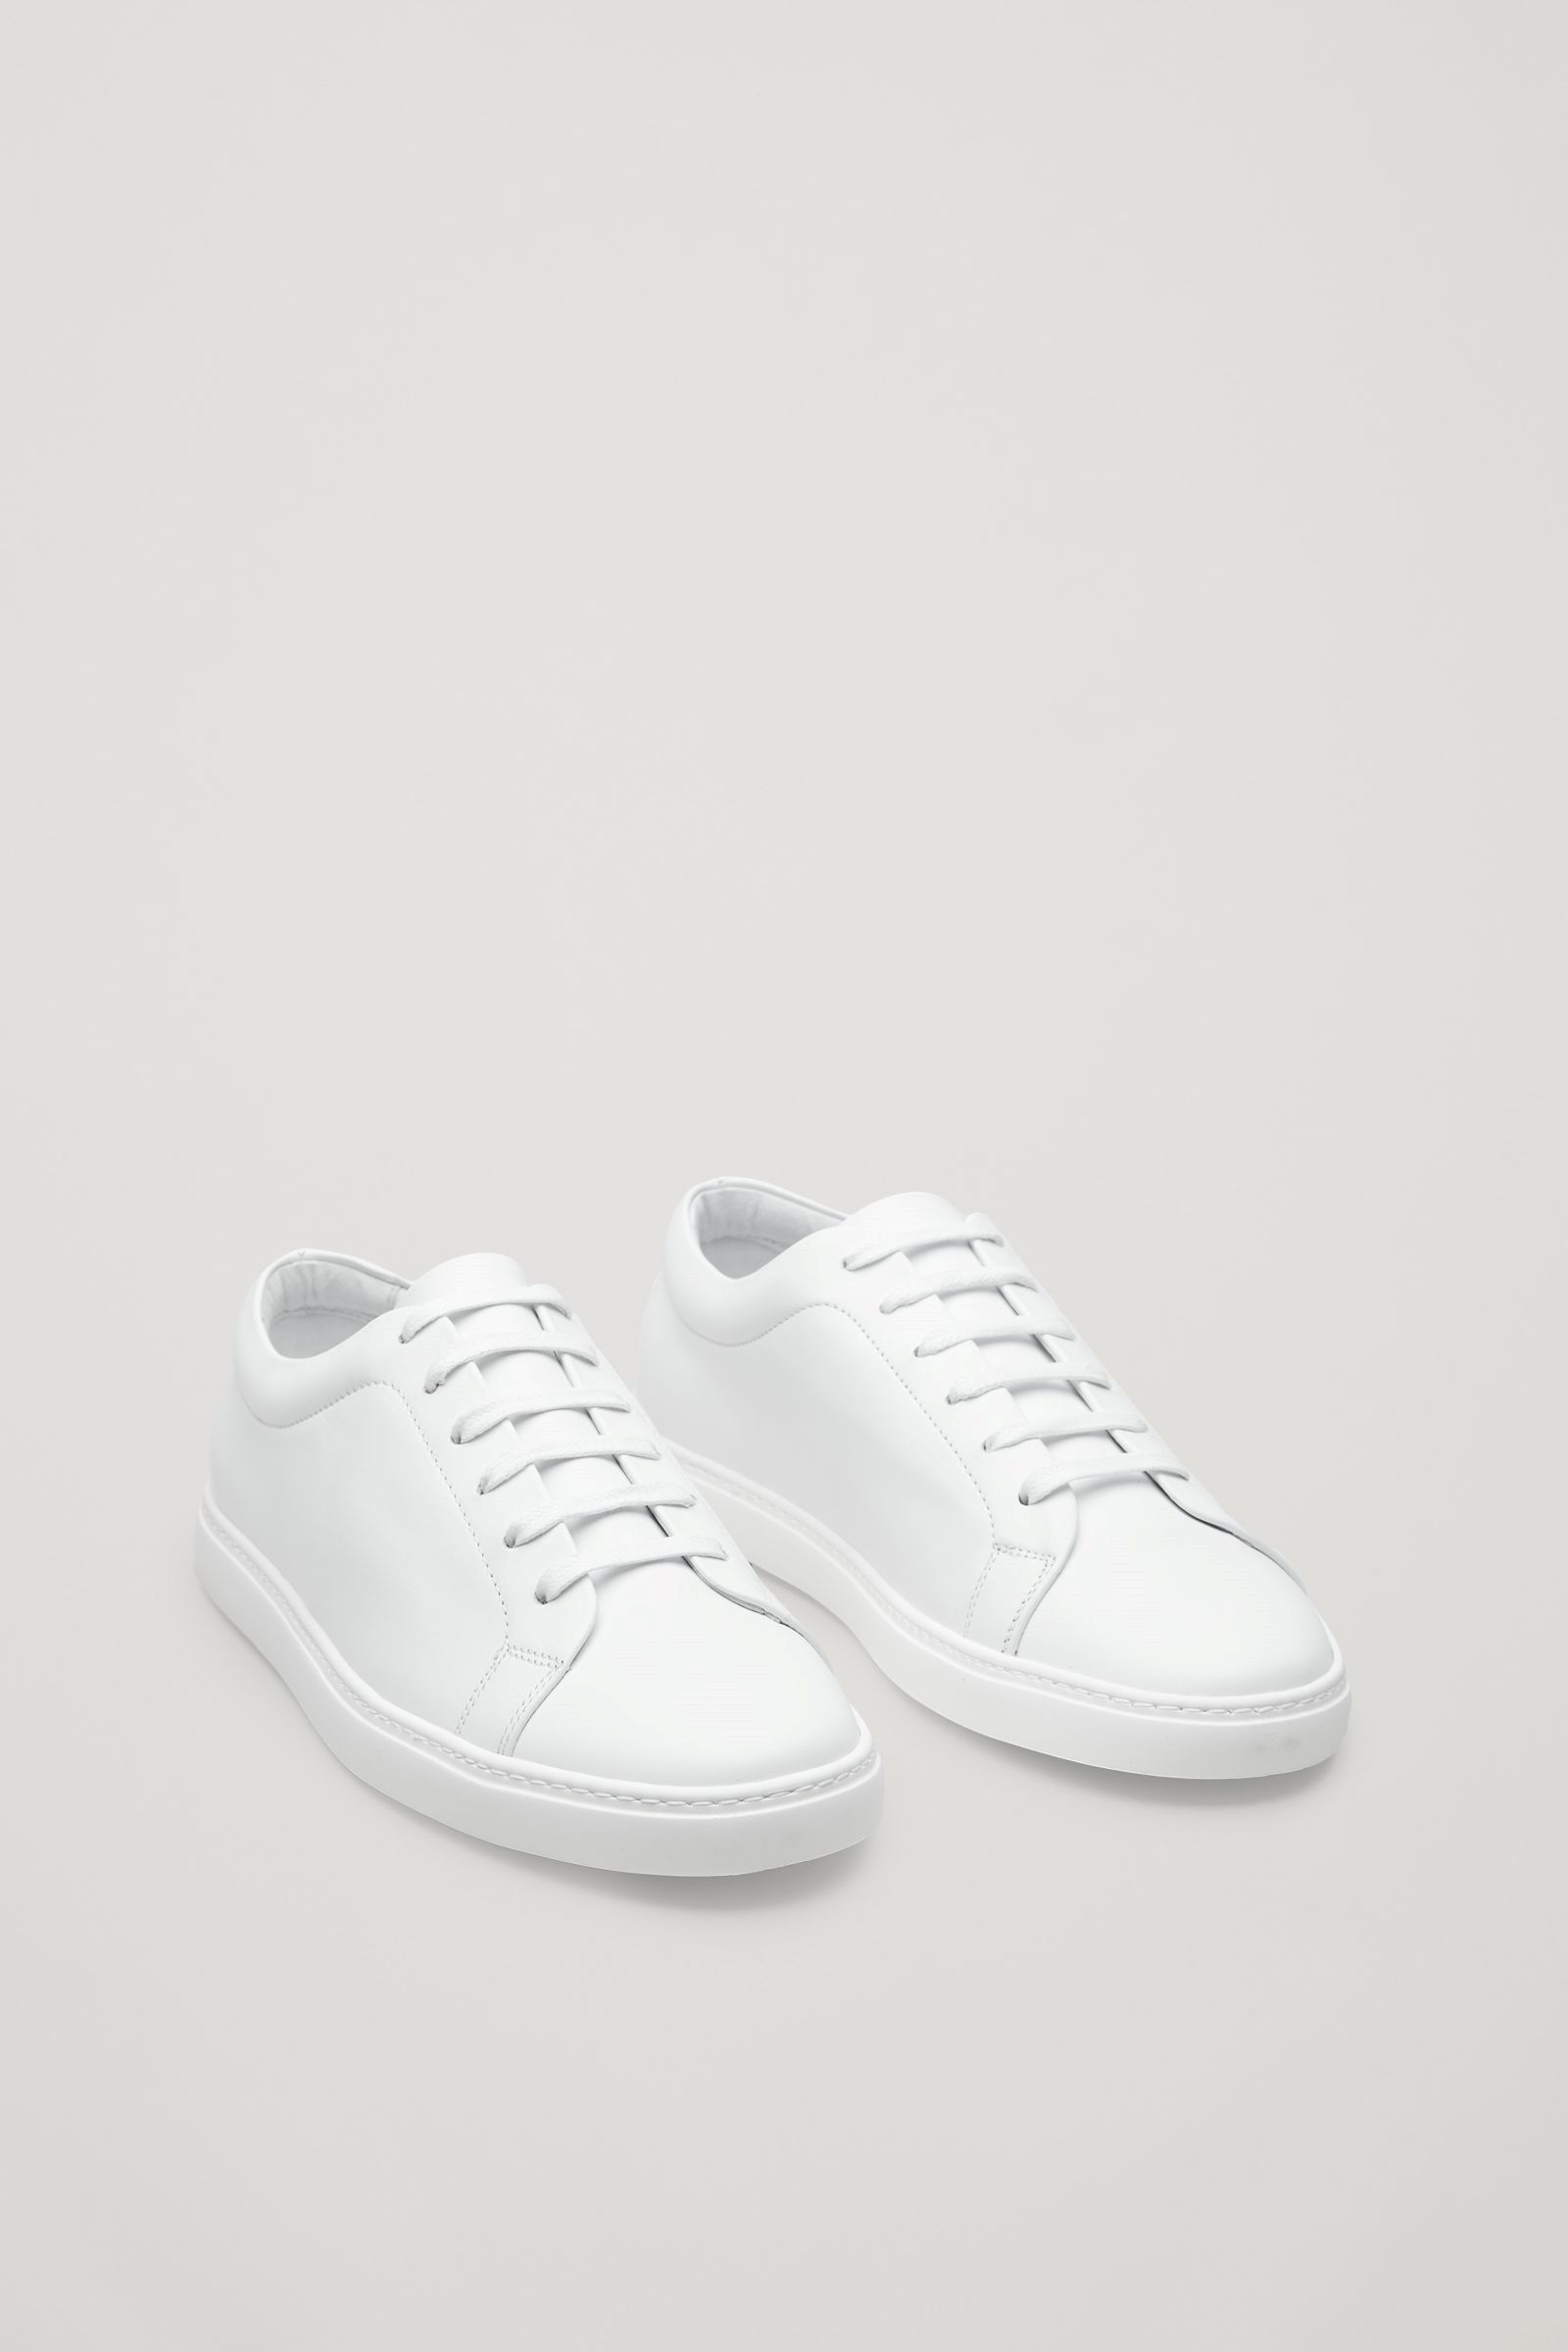 Cos Image 12 Of Slim Sole Lace Up Sneakers In White White Sneakers Men Korean Shoes White Sneakers